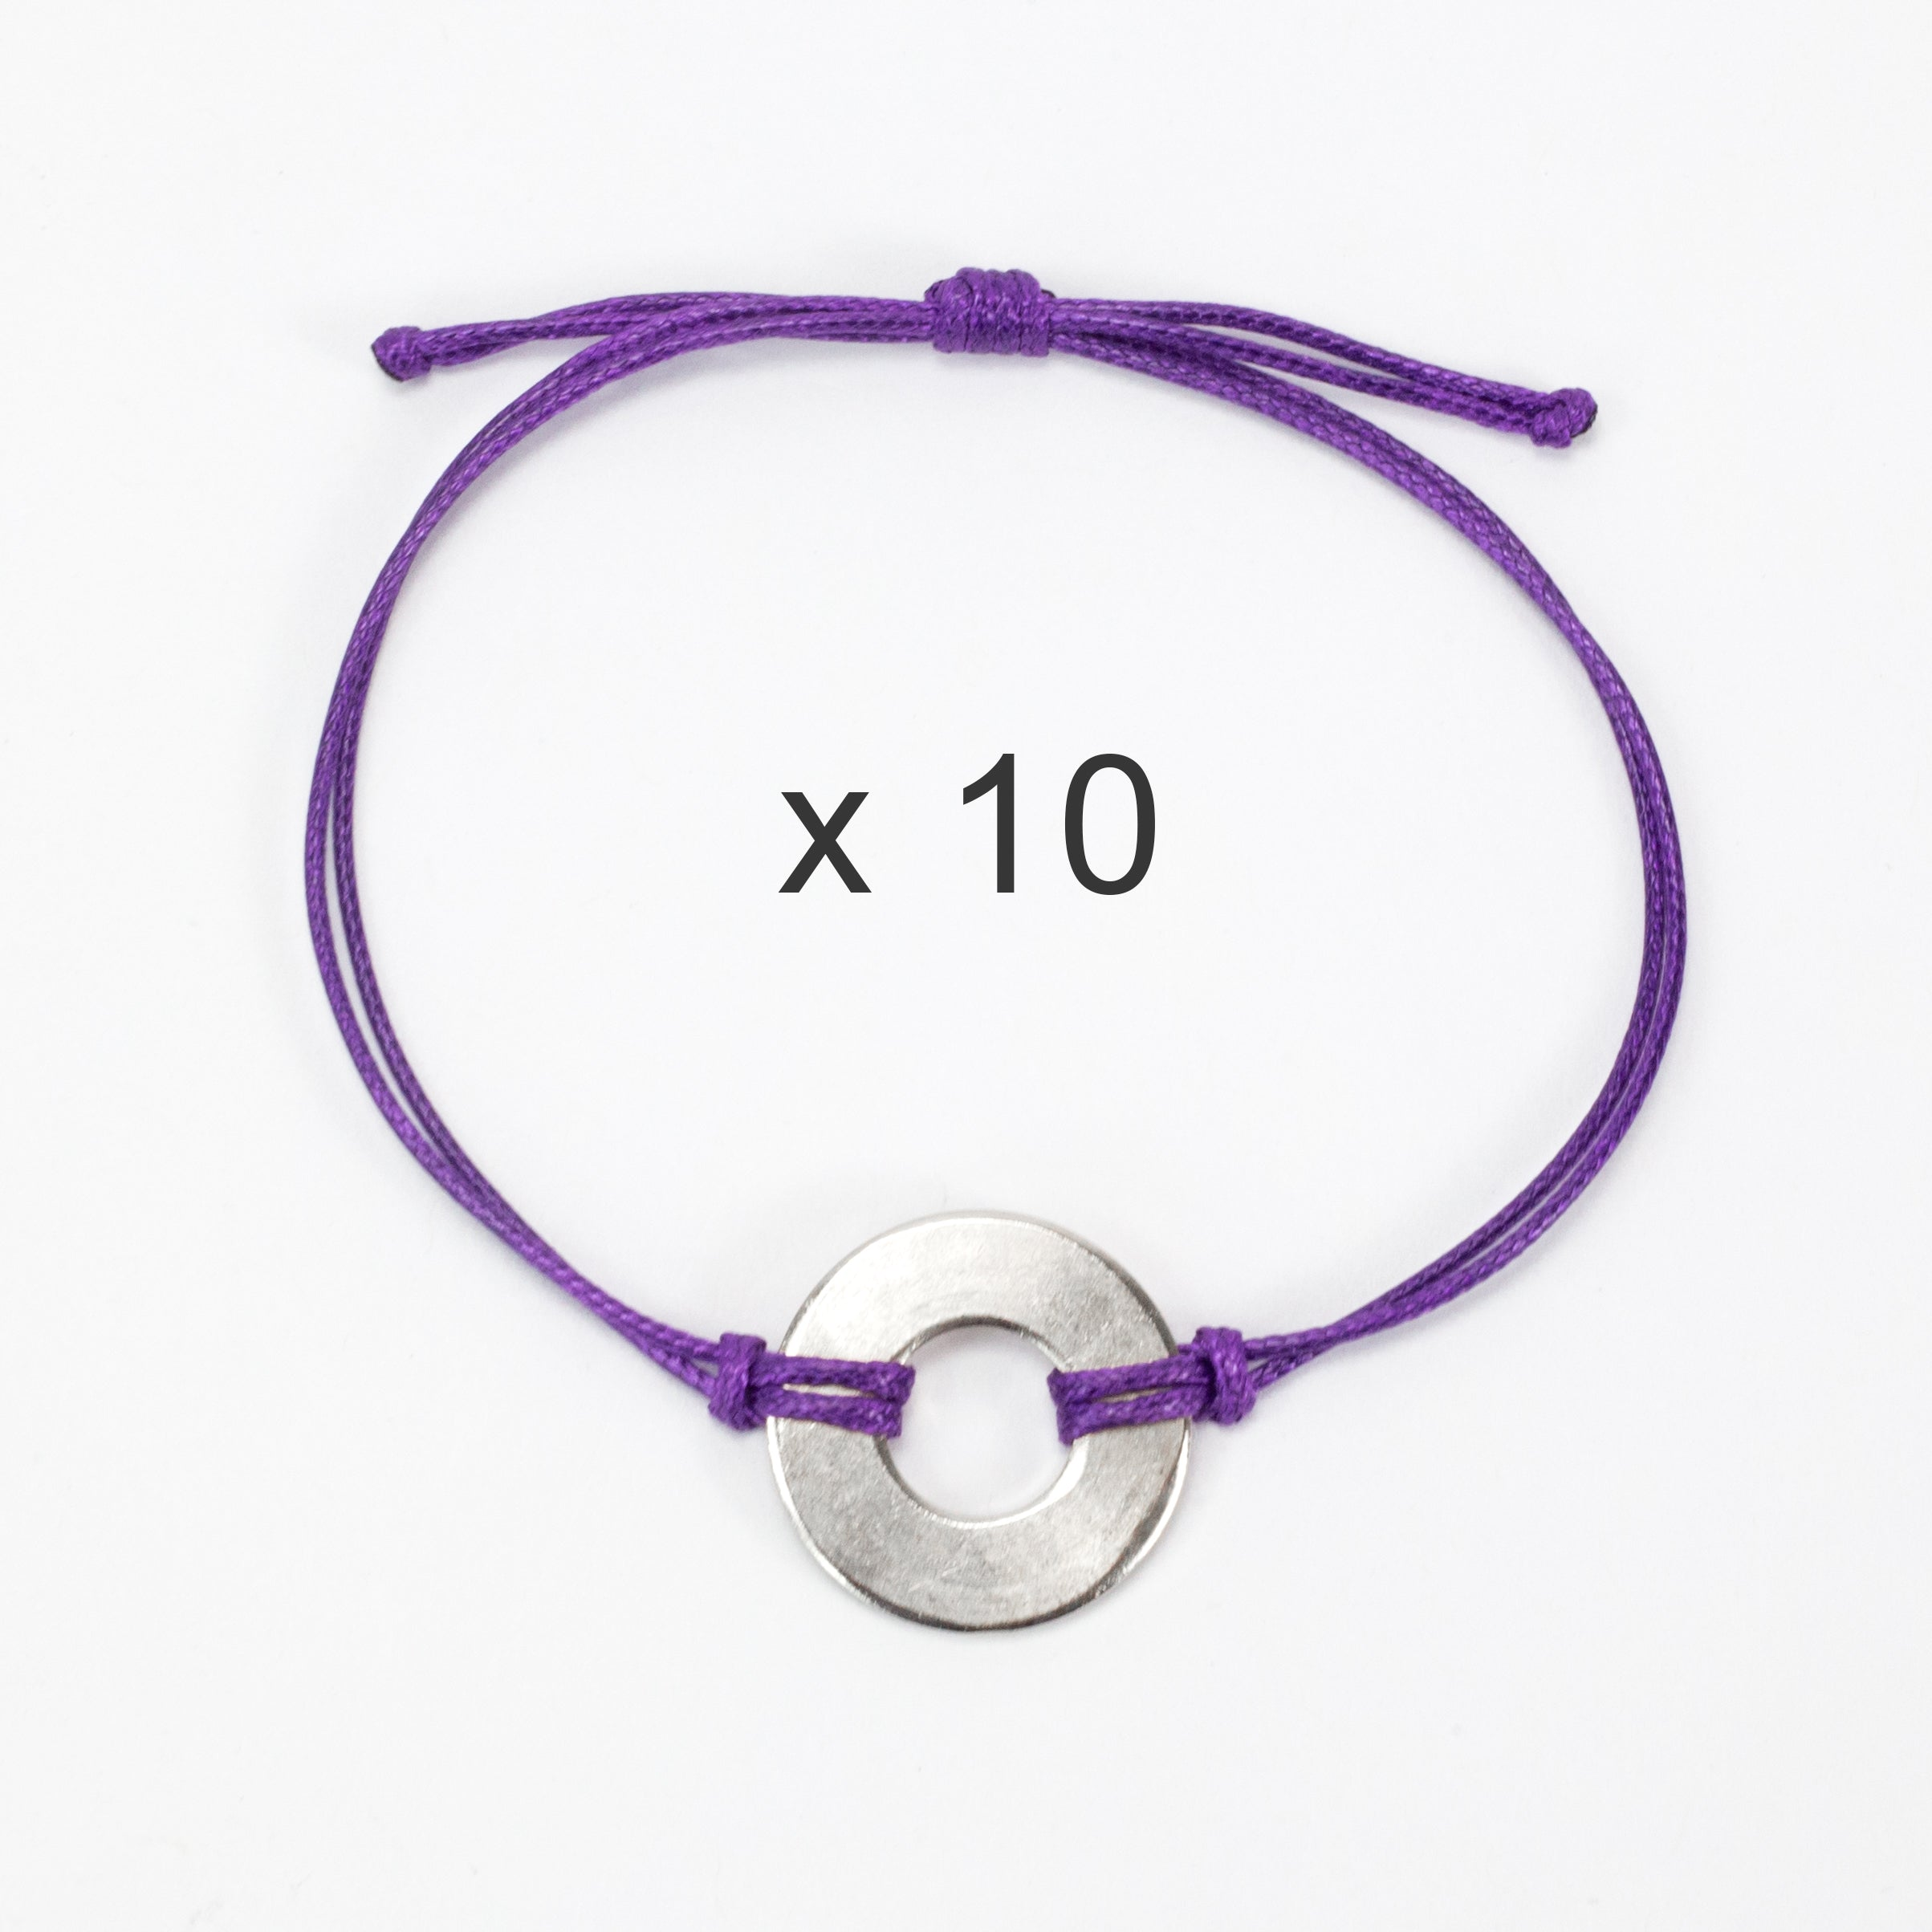 MyIntent Refill Classic Bracelets Purple String set of 10 with Nickel tokens